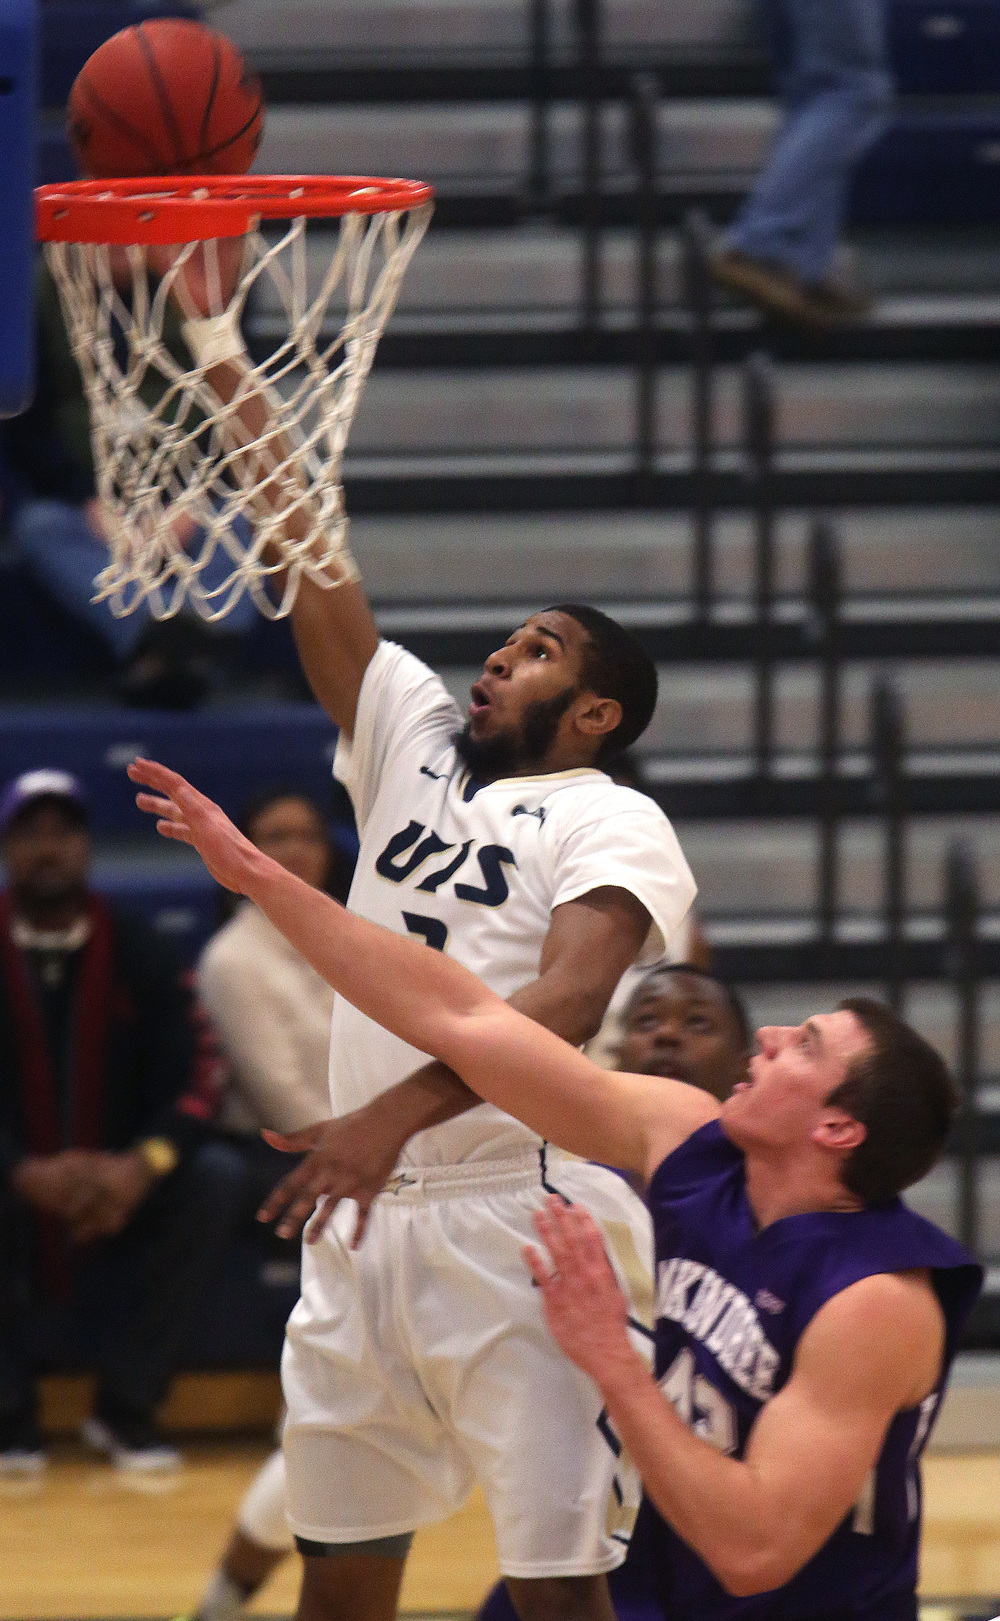 UIS player Davi Austin prepares to put in two points in the first half. David Spencer/The State Journal Register